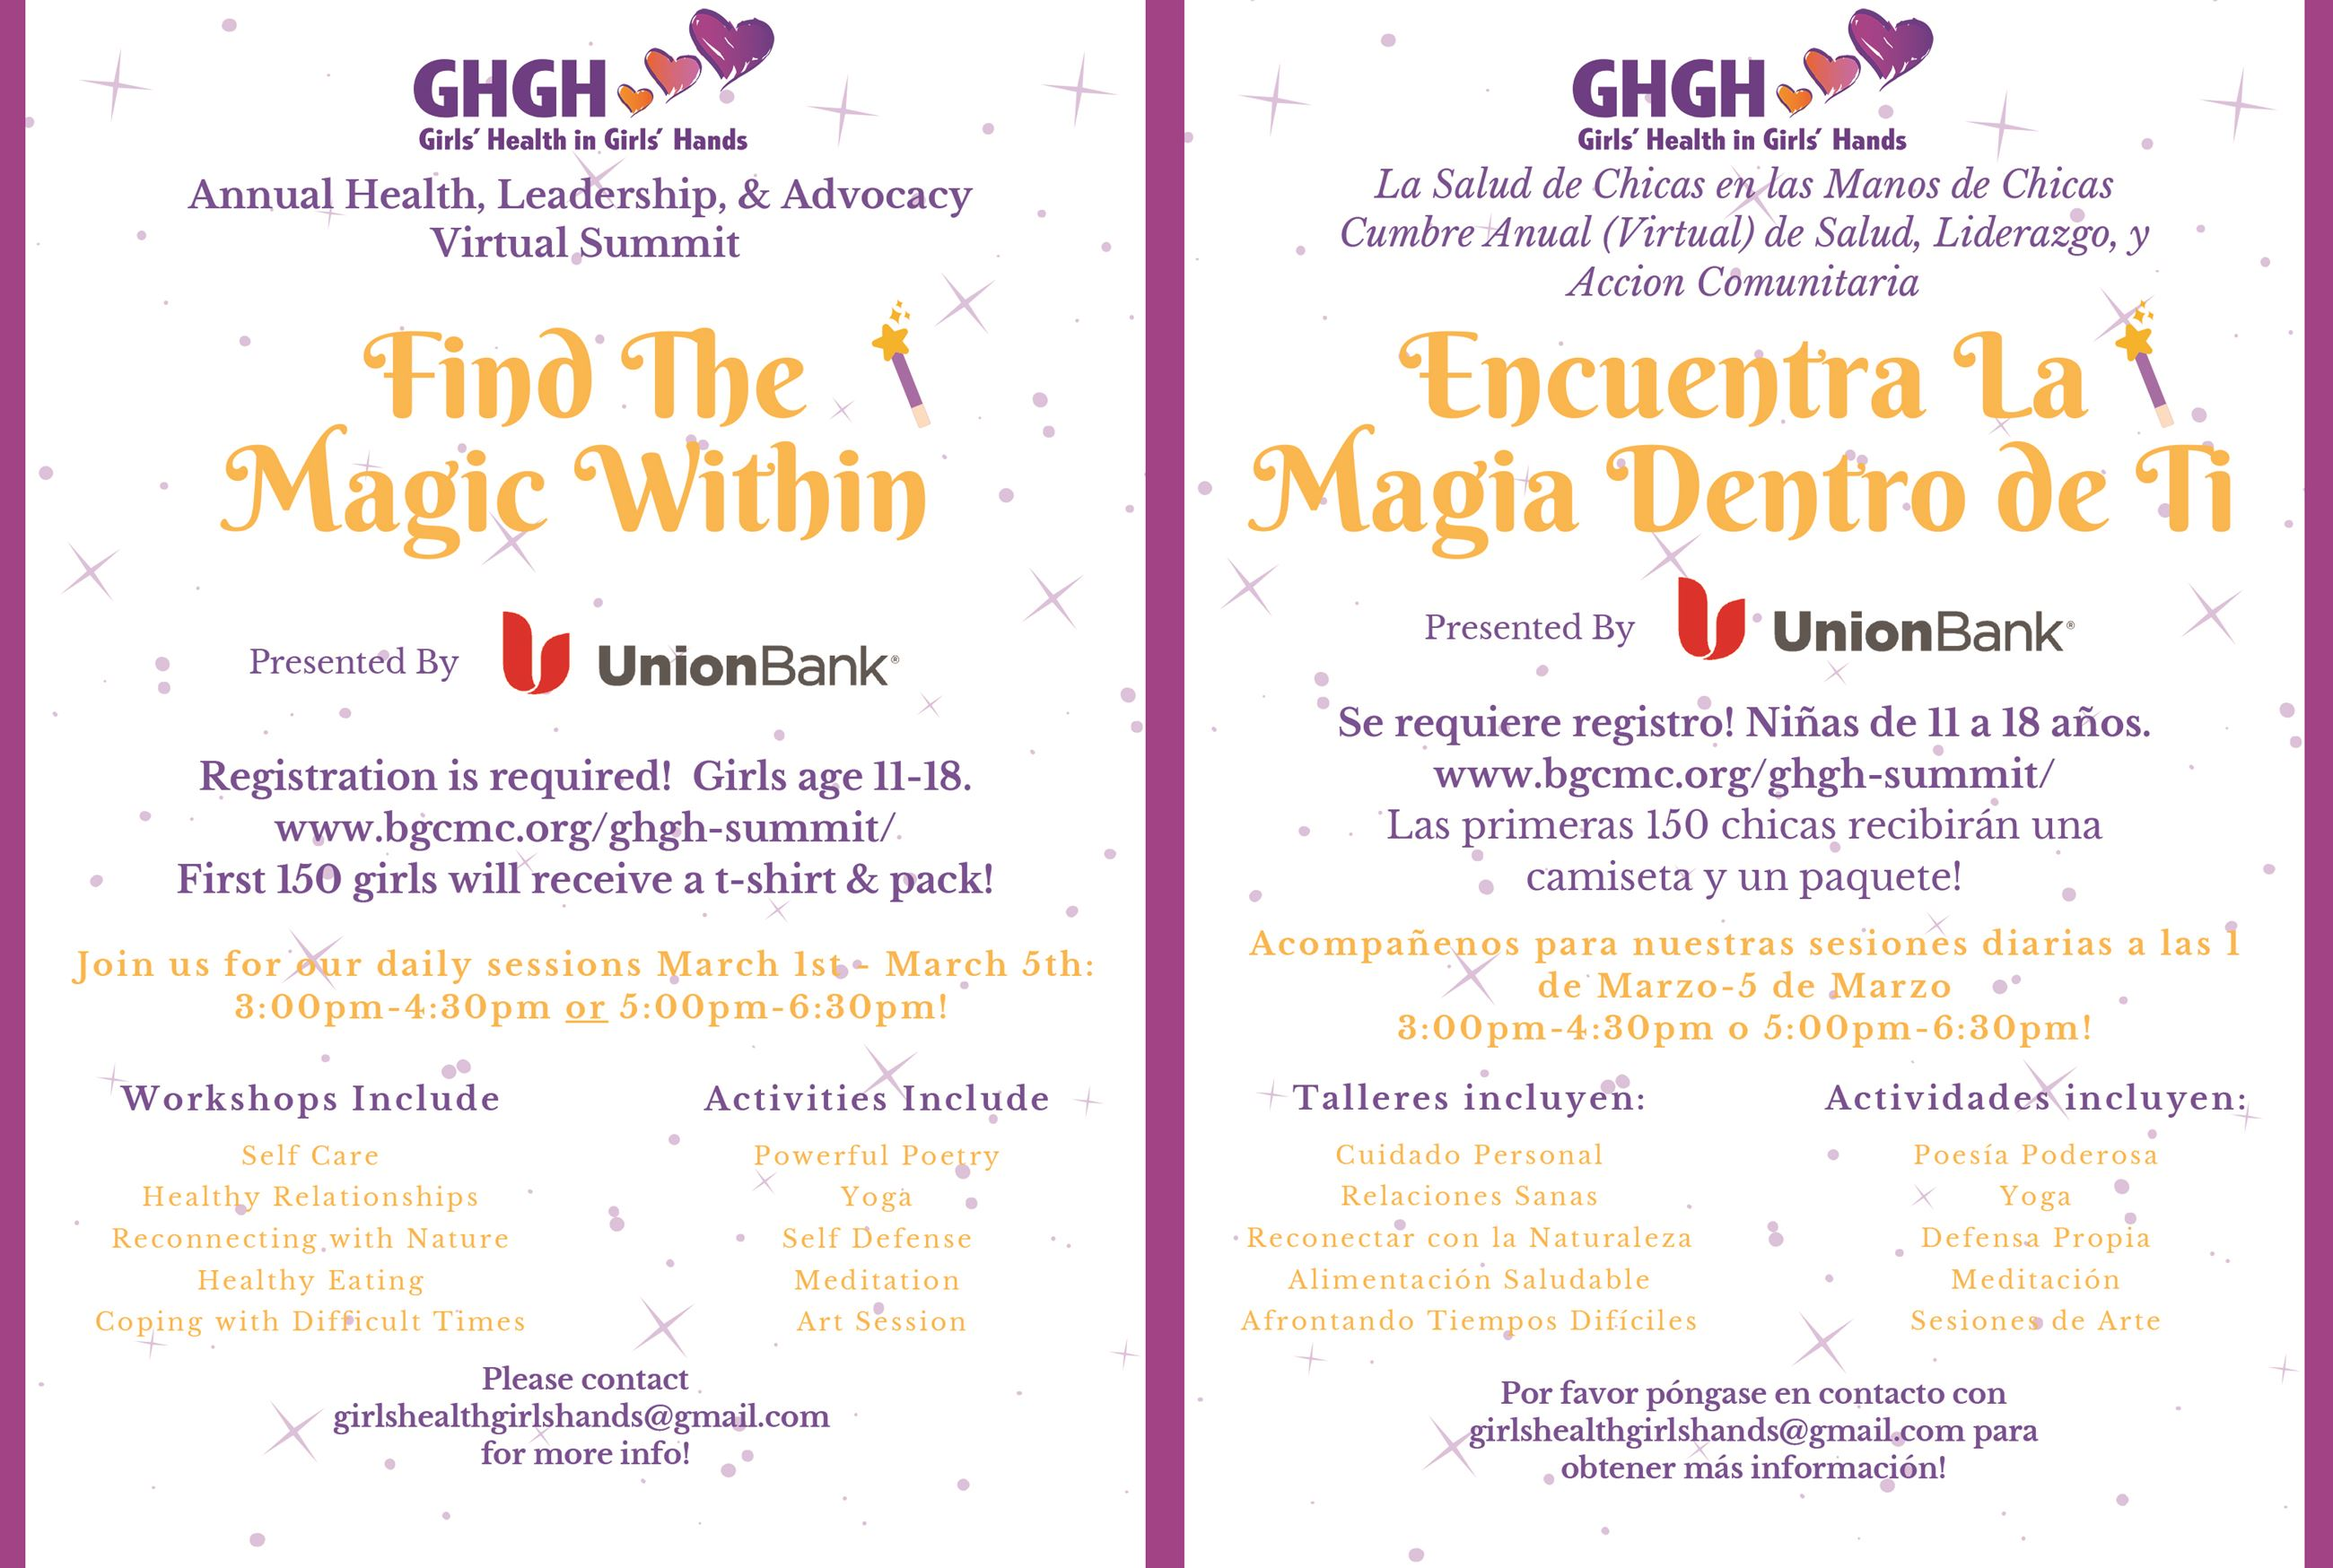 2GHGH Find the Magic Within Summit 2021 English and Spanish Flyers